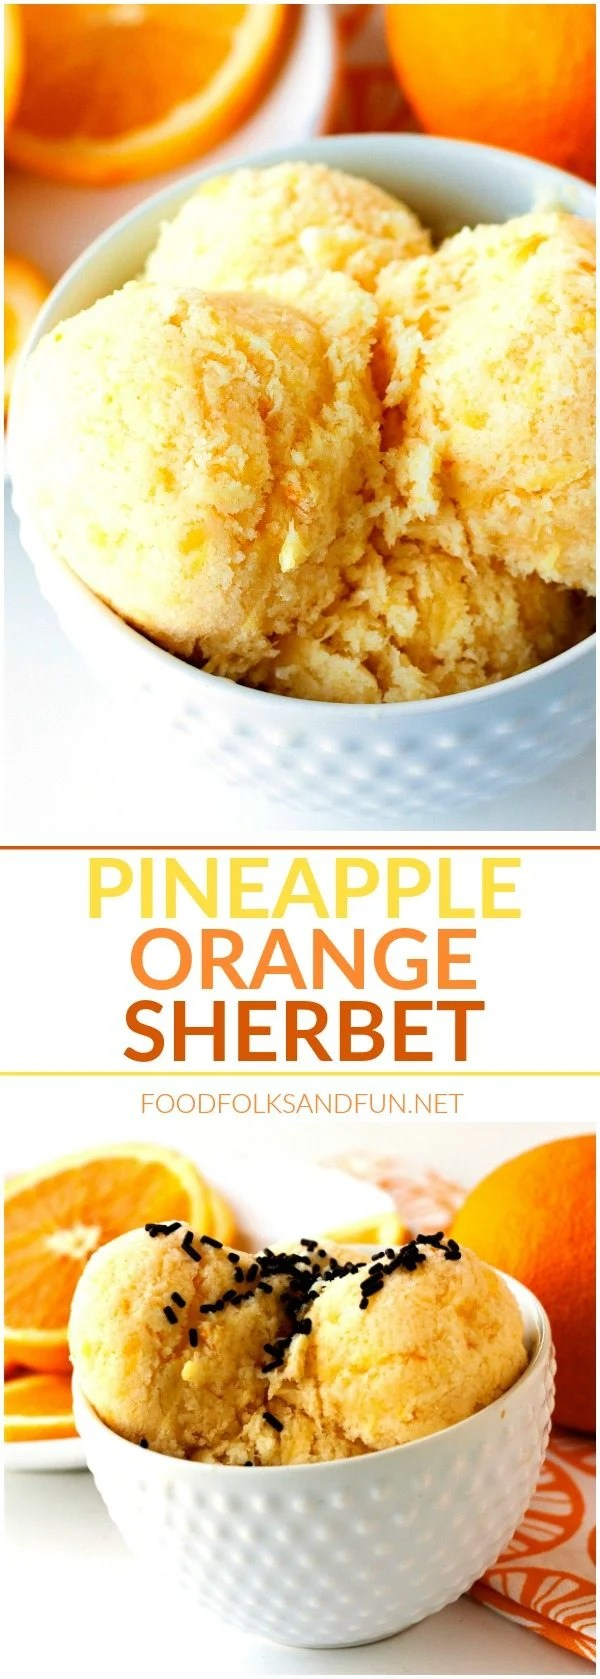 Picture collage of orange sherbet.